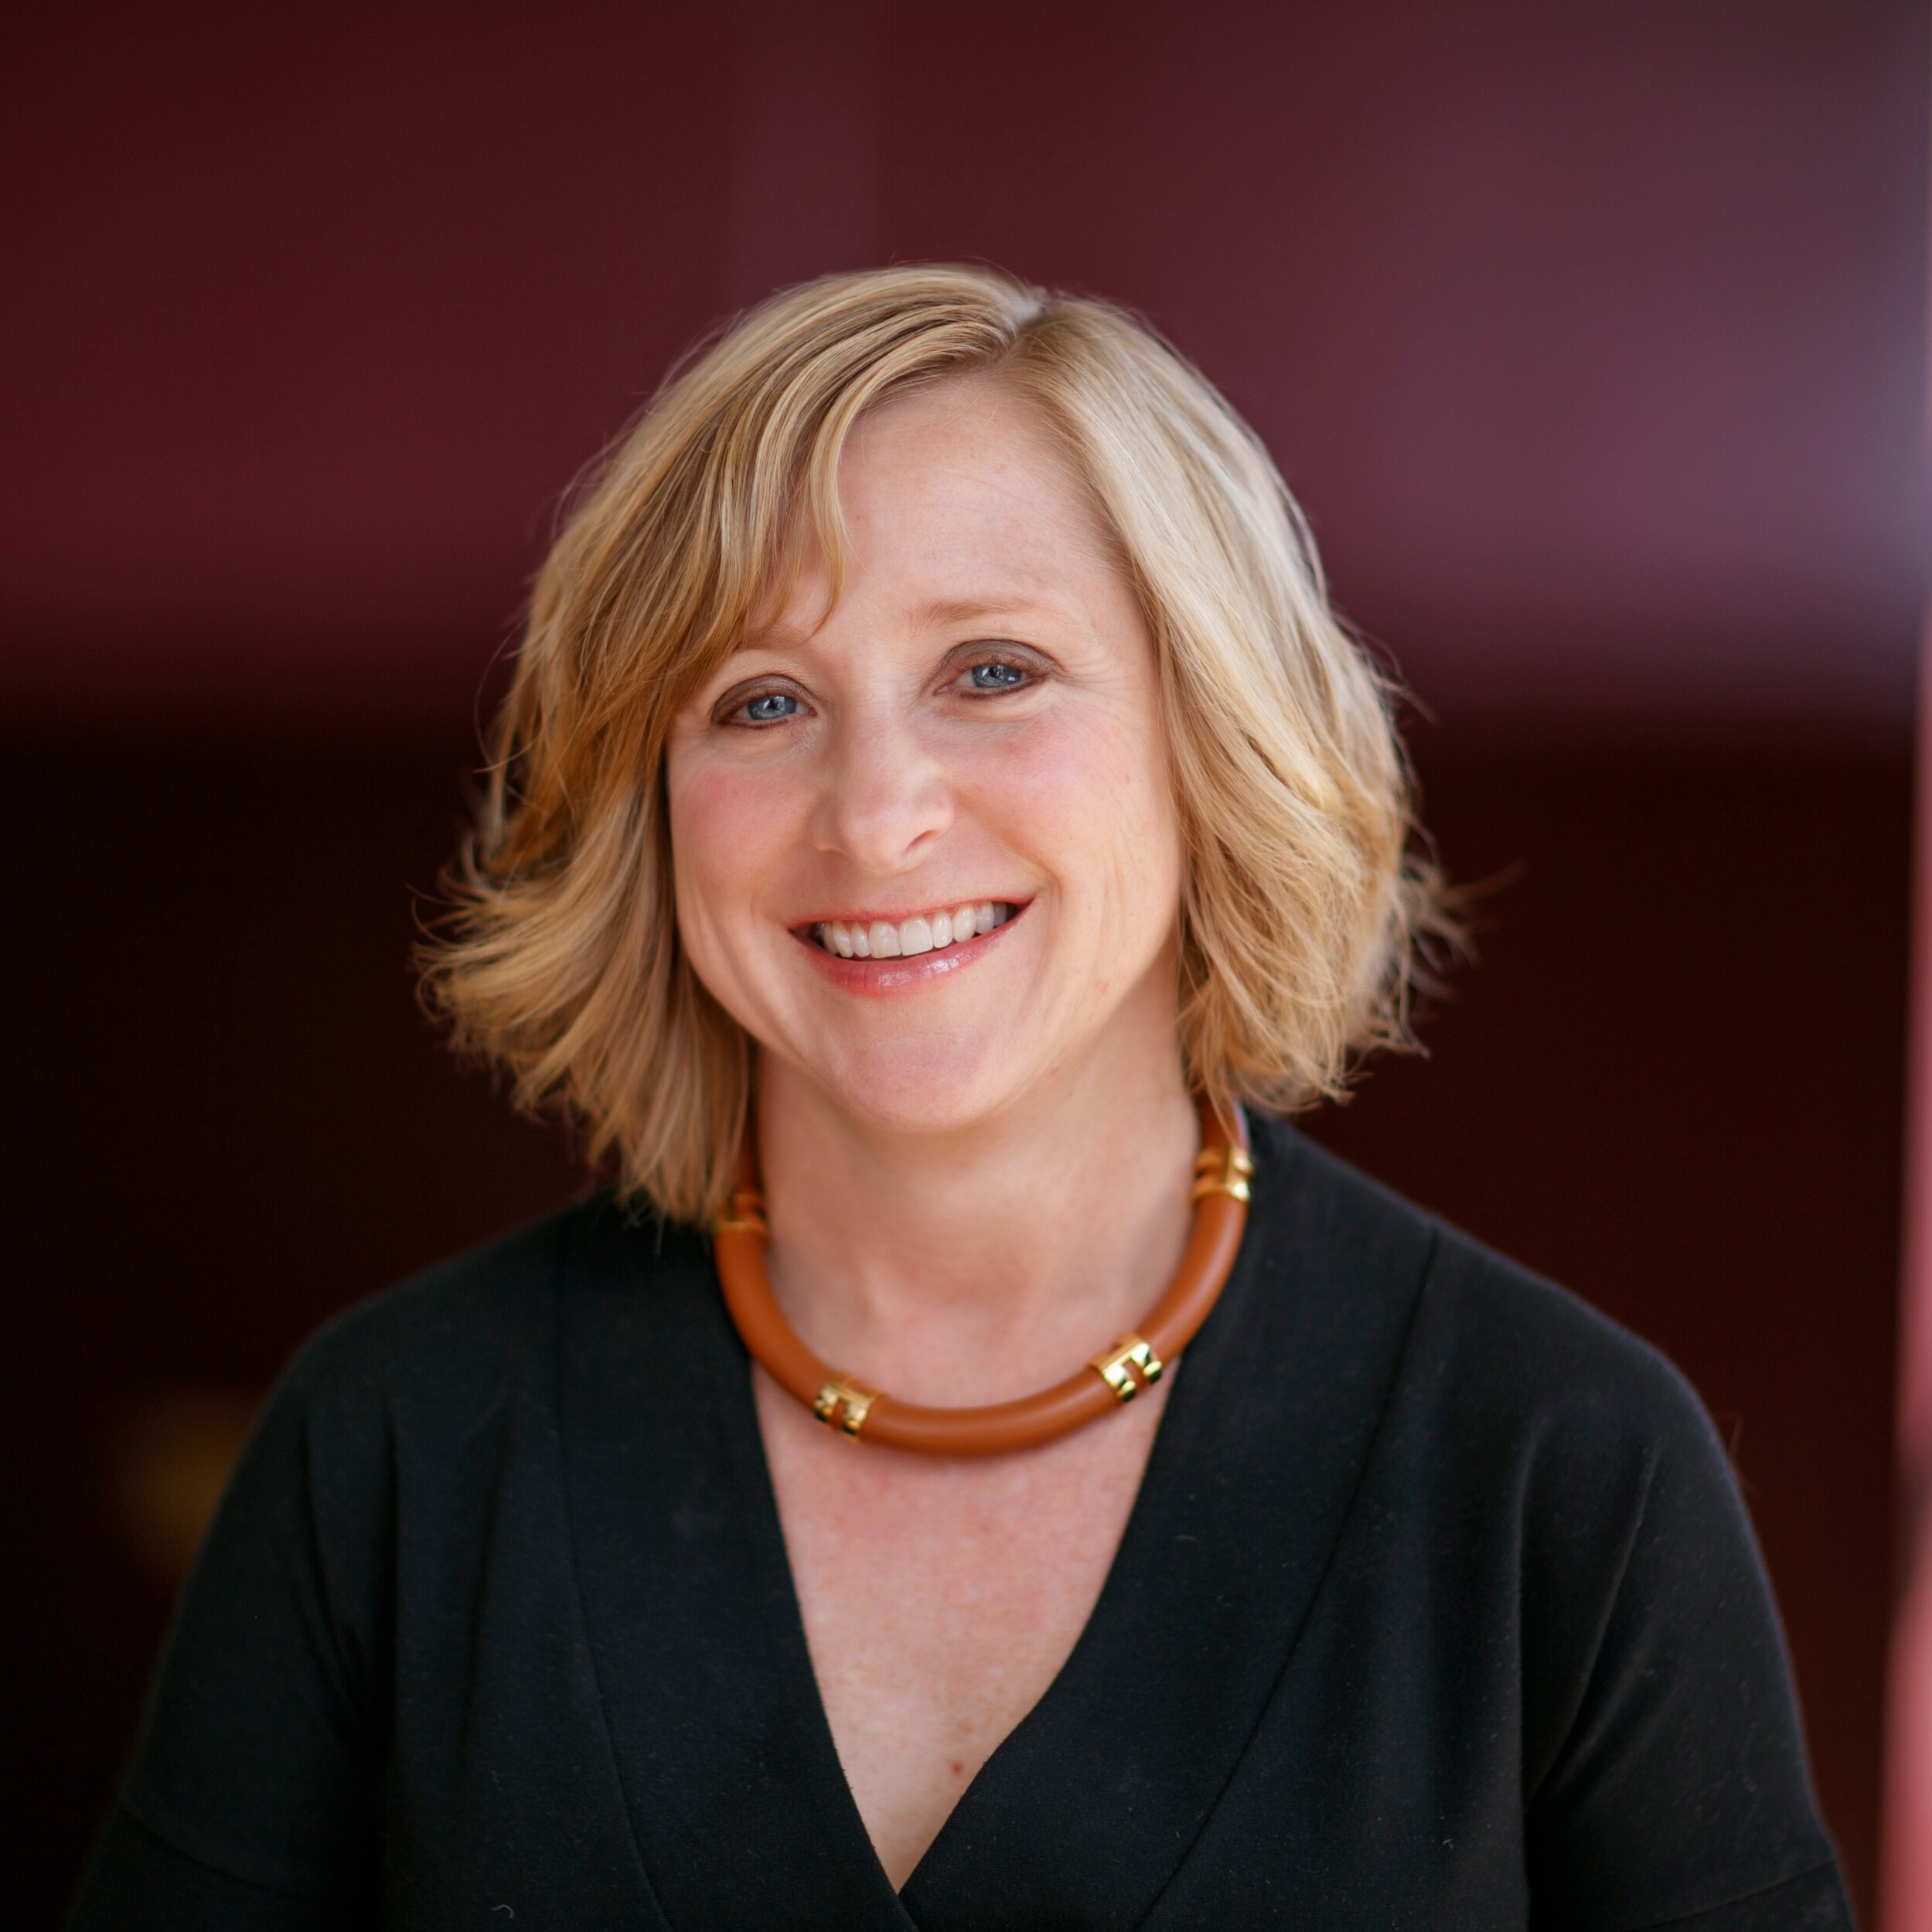 Jocelyn Mangan - CEO and Founder, Him For Her